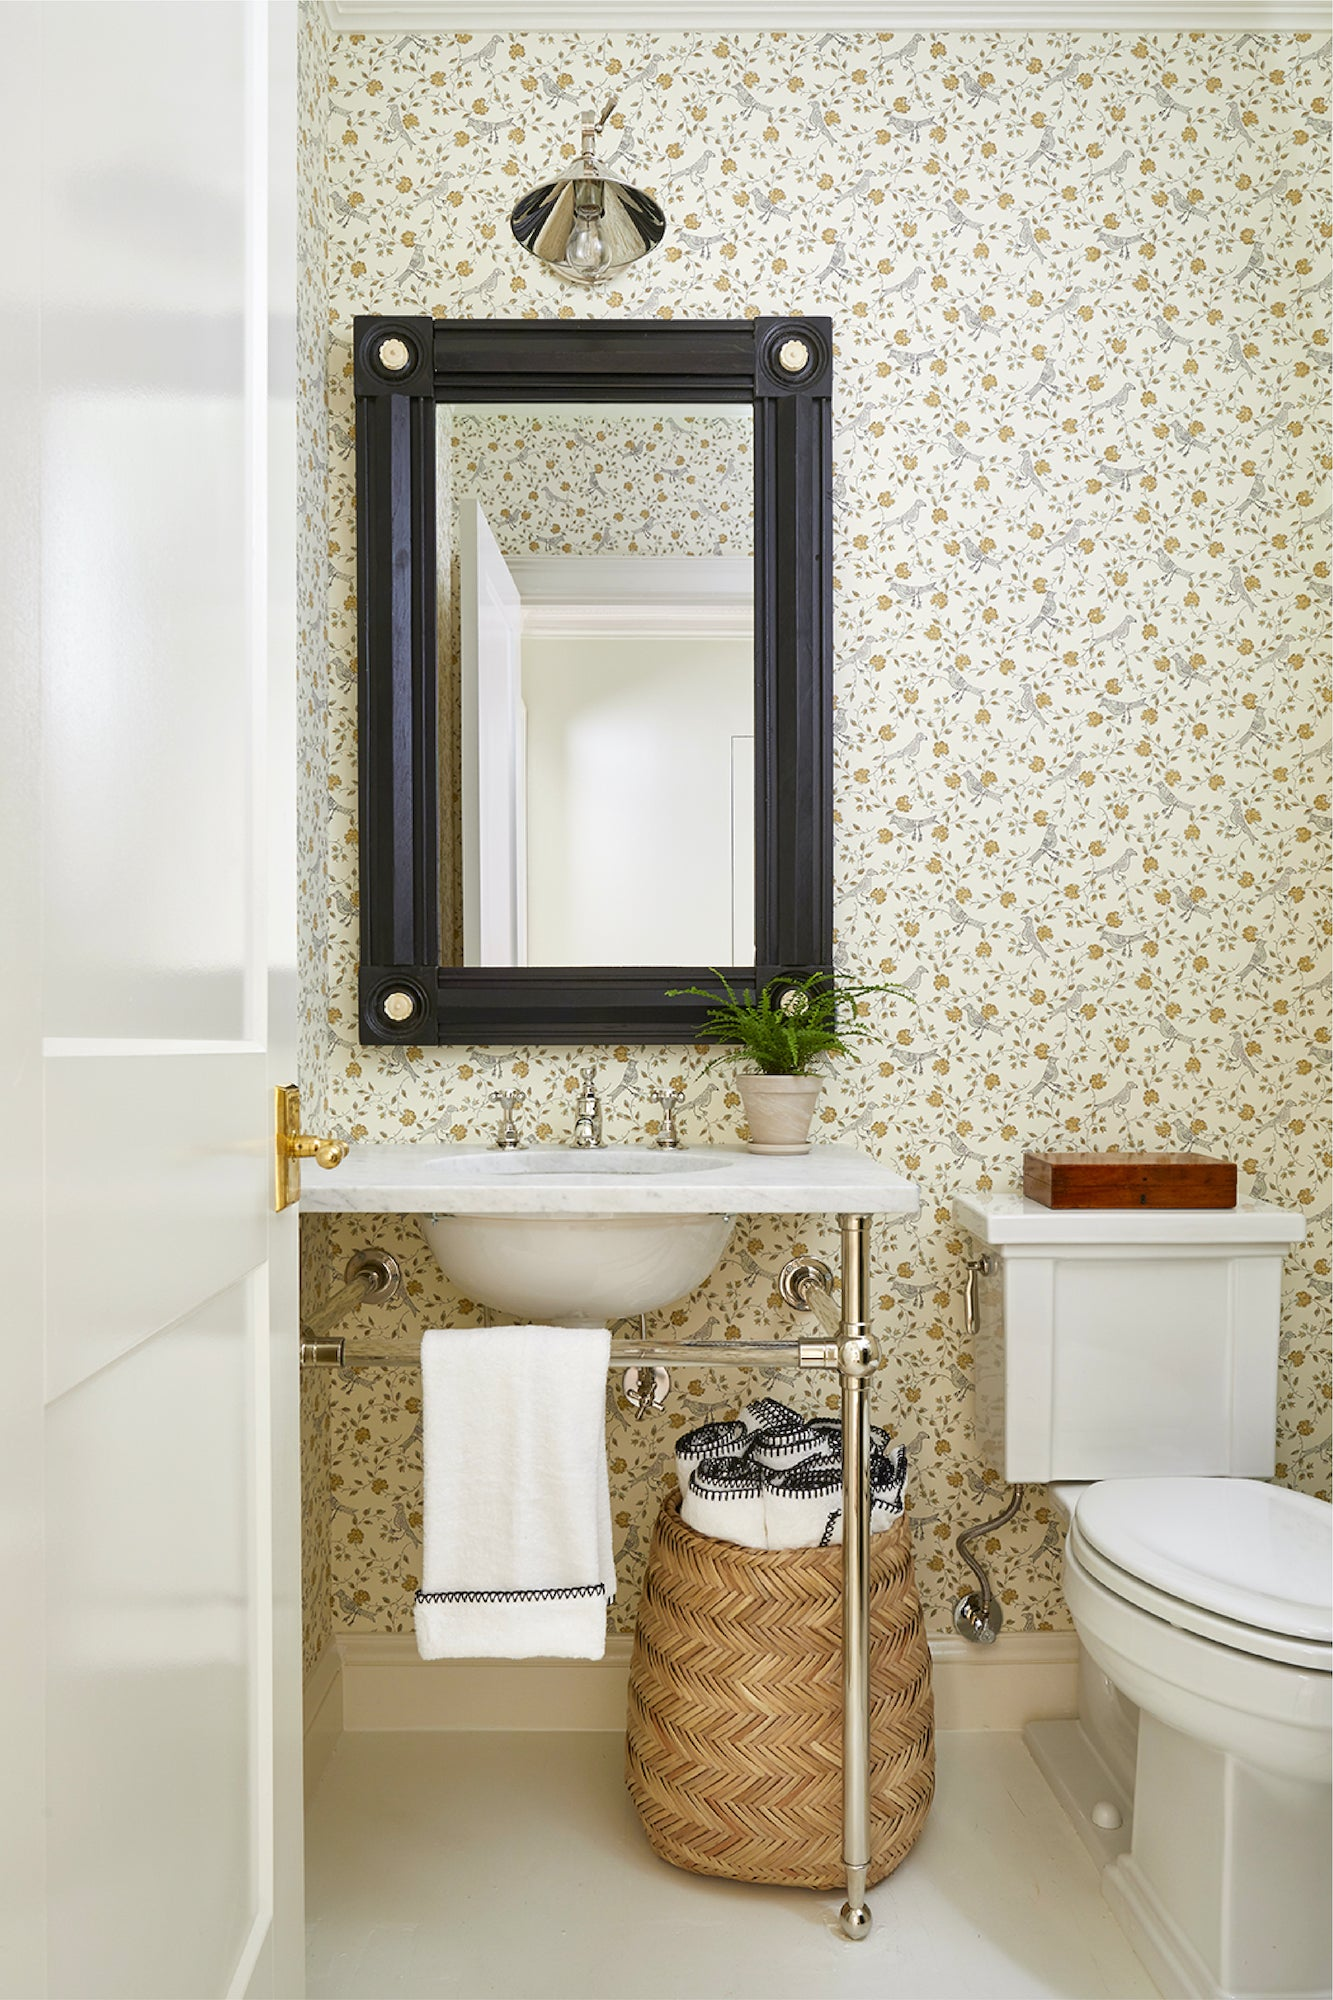 A bathroom Jeremy designed with floral wallpaper and black edged Weezie towels.